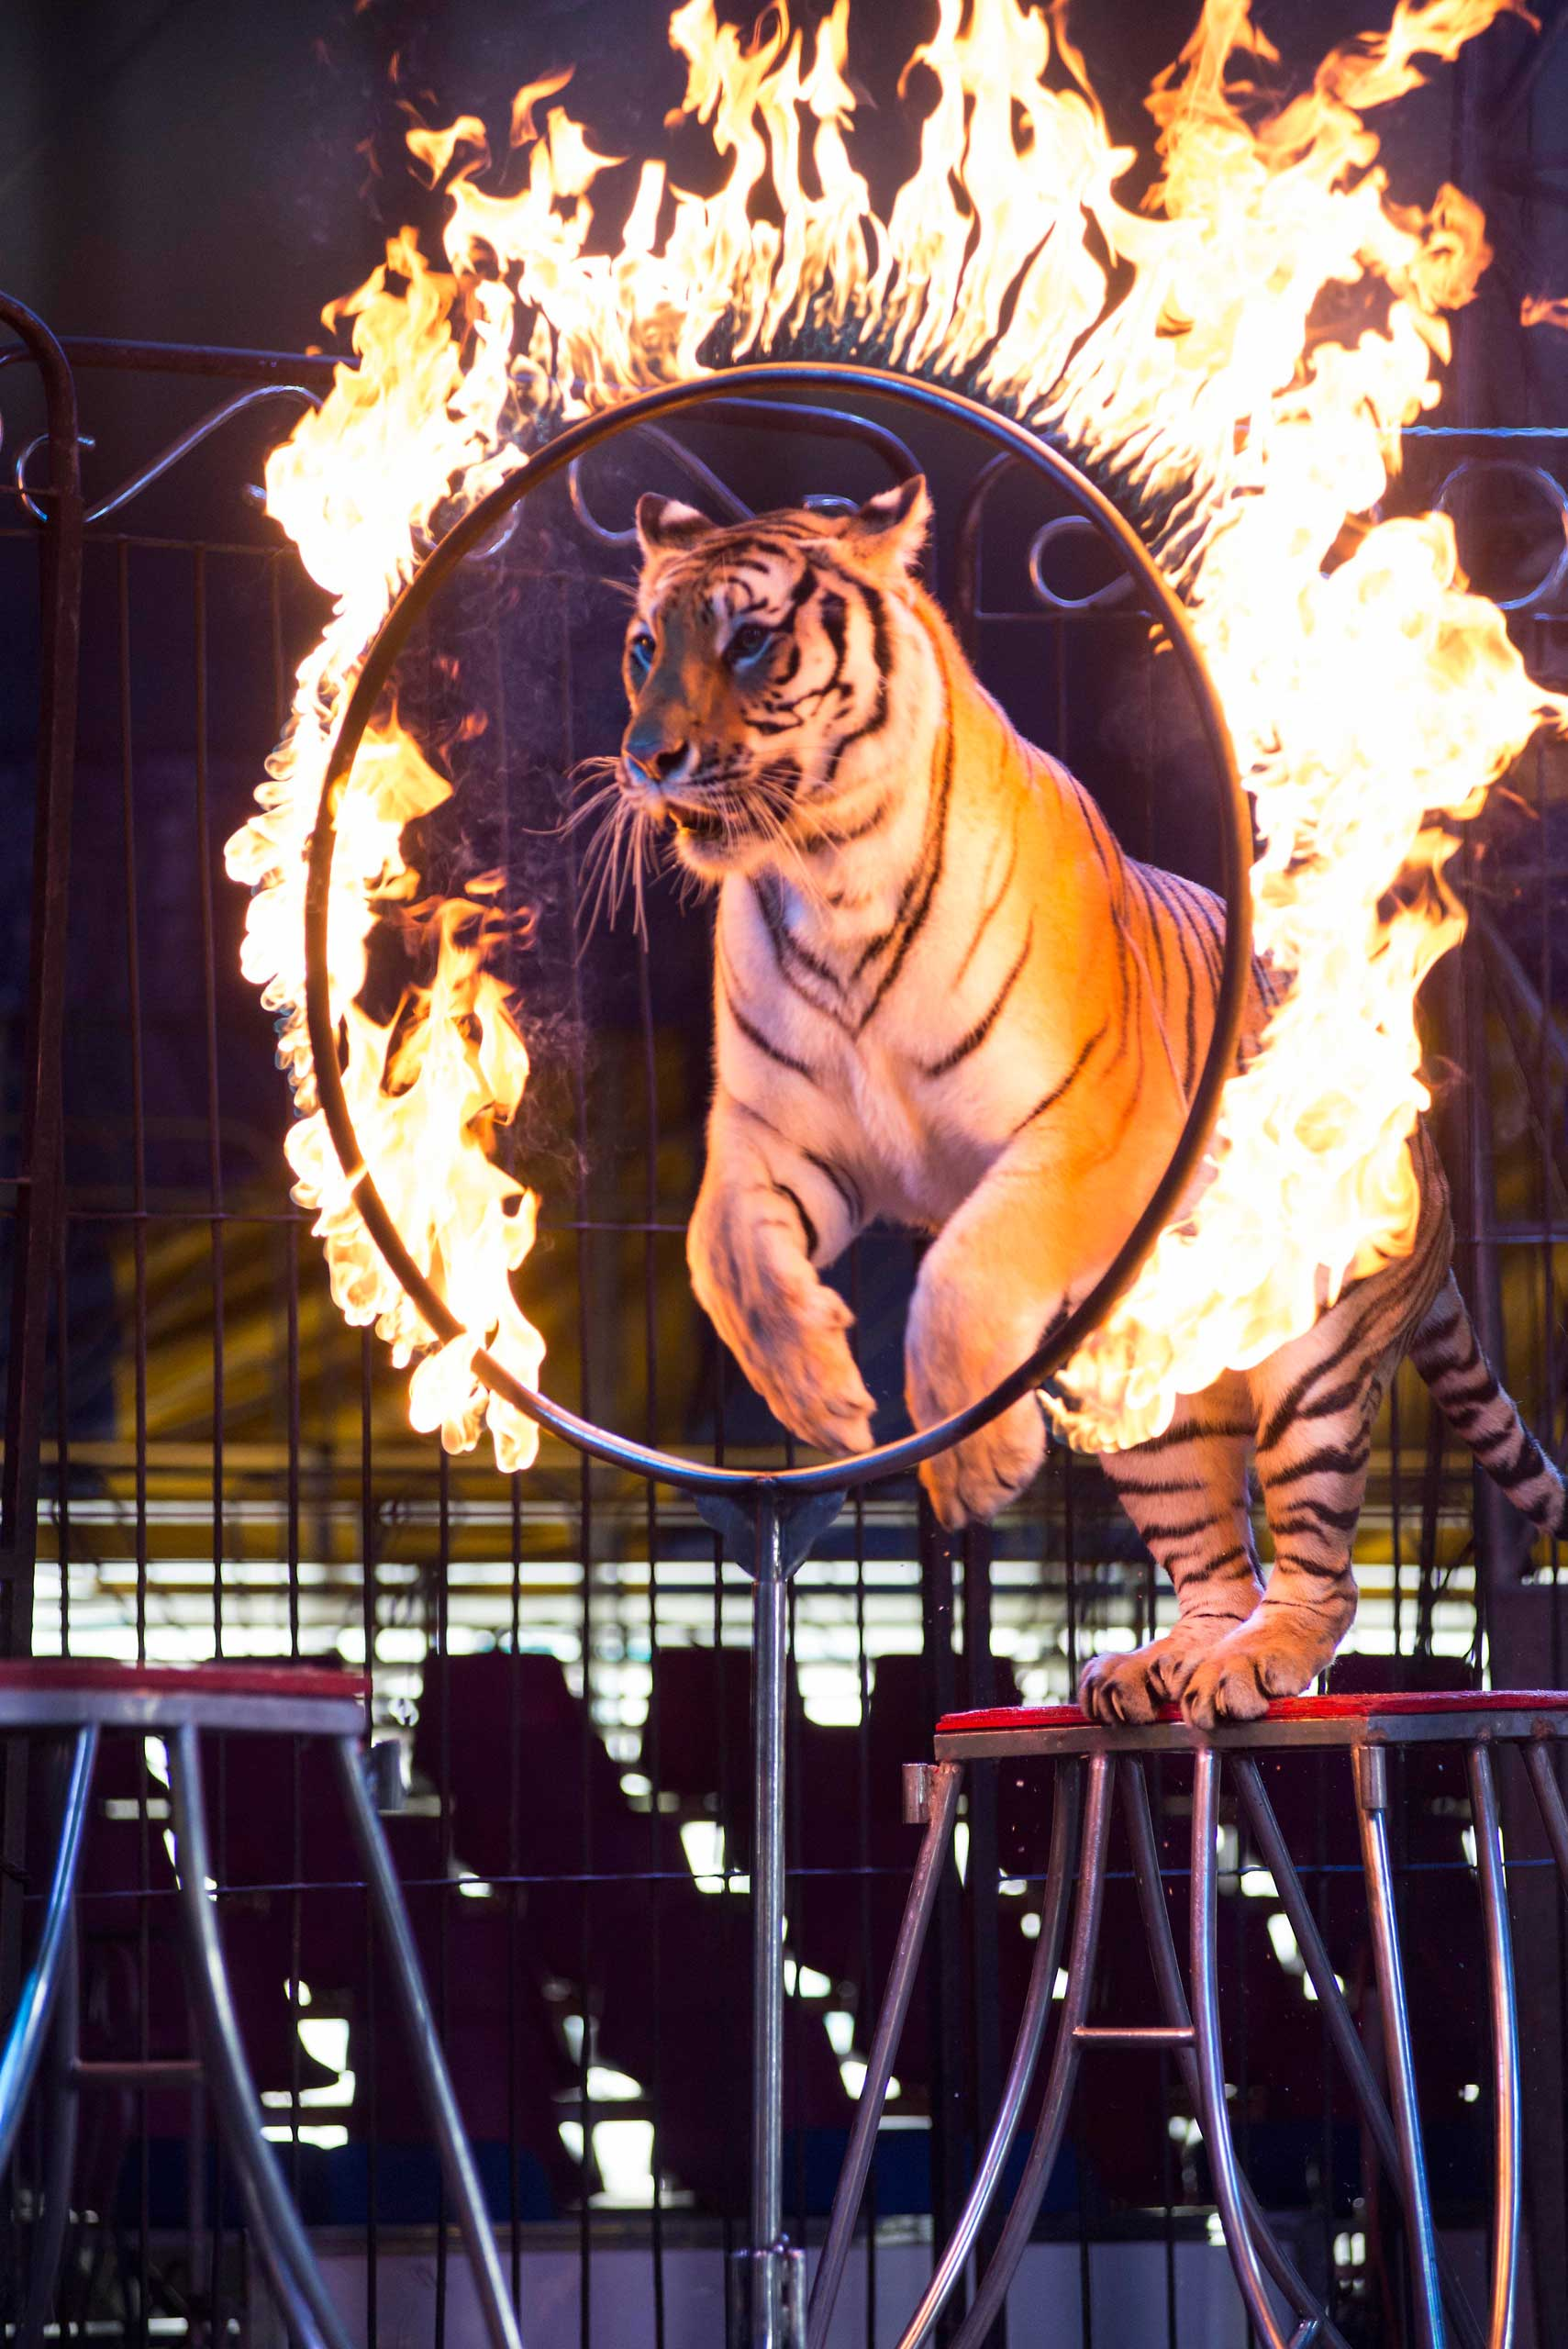 A tiger jumps through a ring of fire during a performance of the Fuentes Gasca Brothers Circus in Mexico City, June 22, 2014.